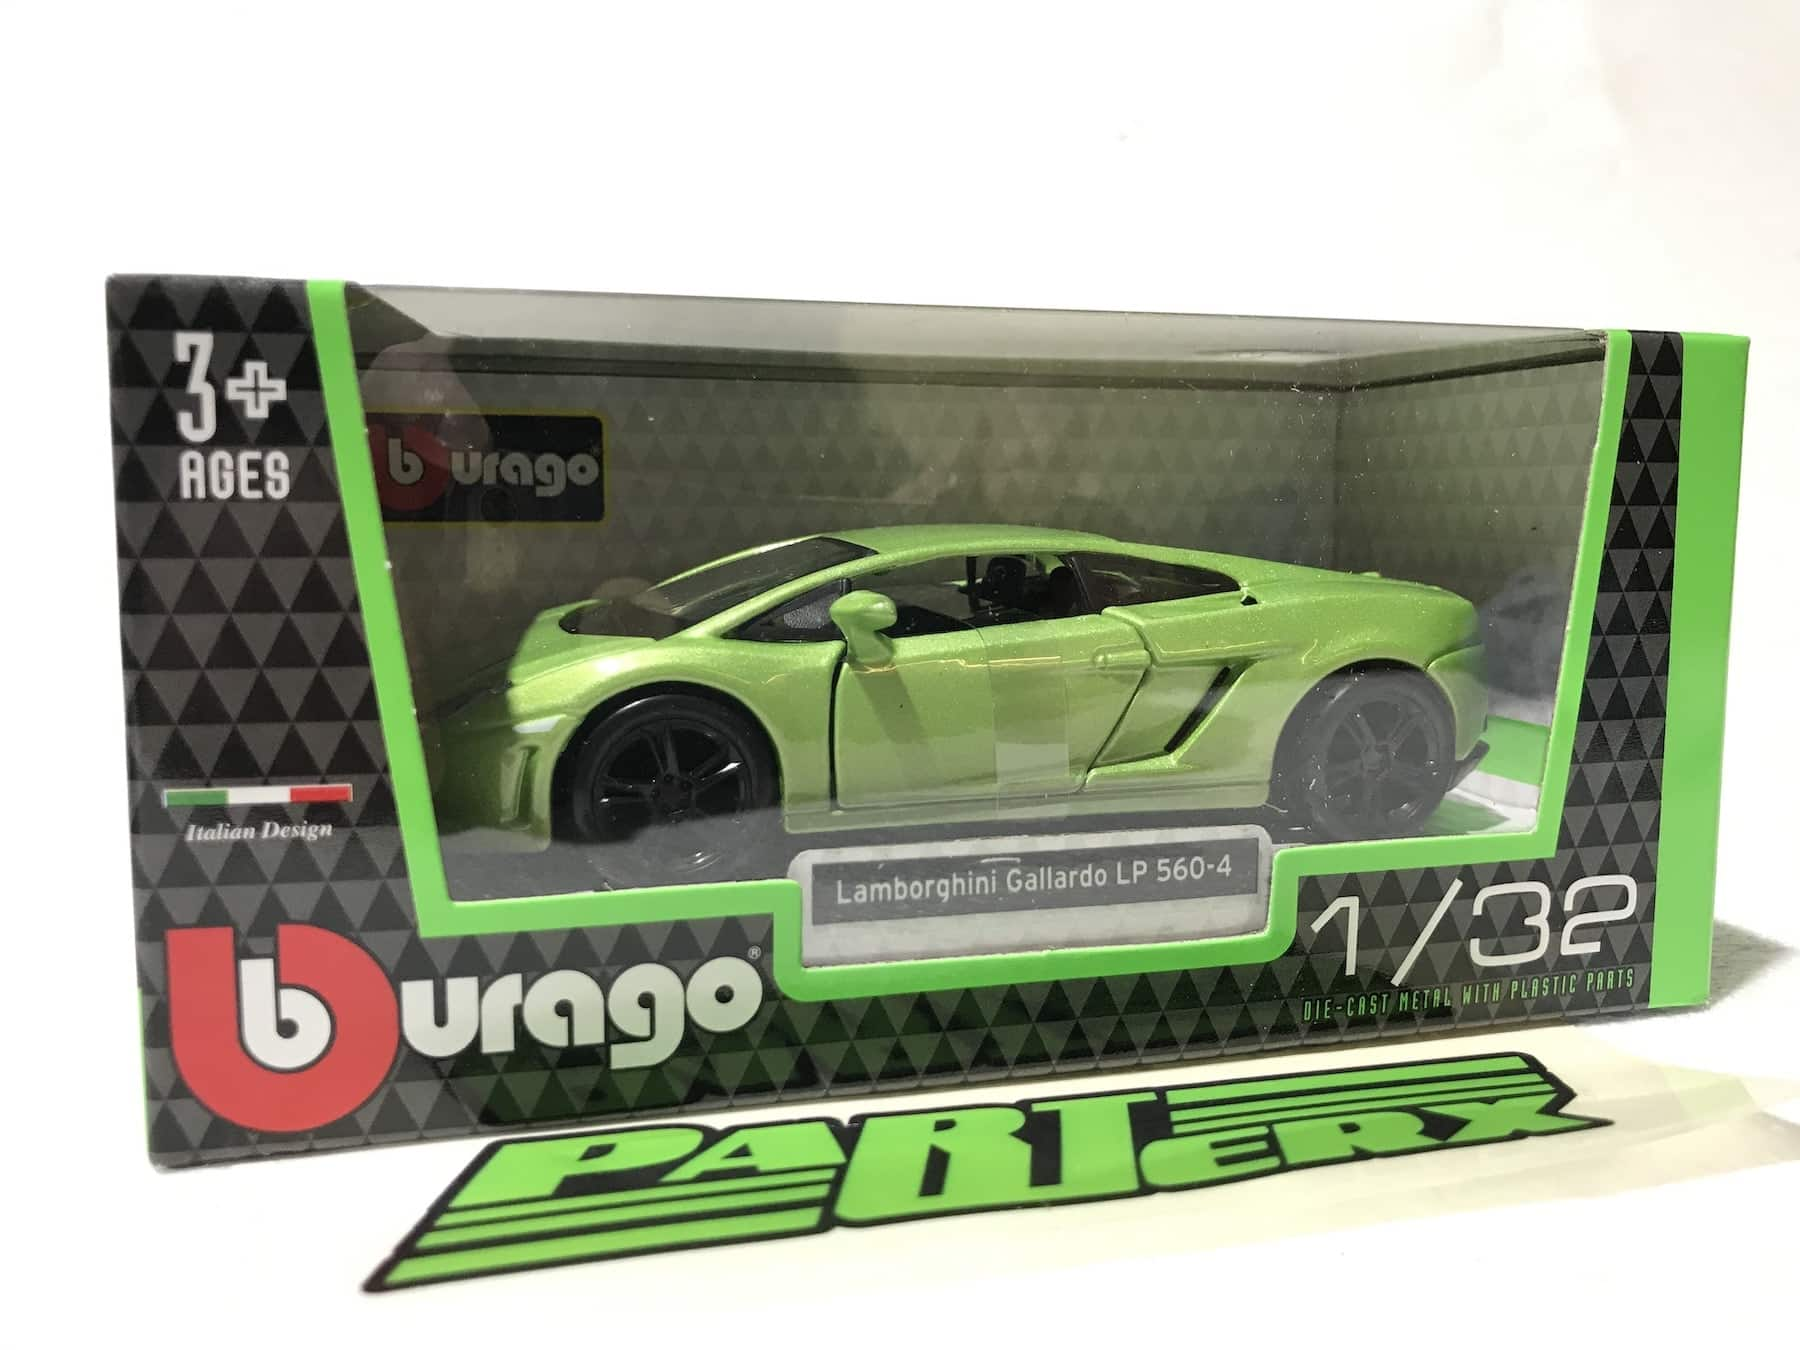 Lamborghini Gallardo LP560-4 1:32 Scale Model Toy Childs Kids Enthusiasts Collectors Gift